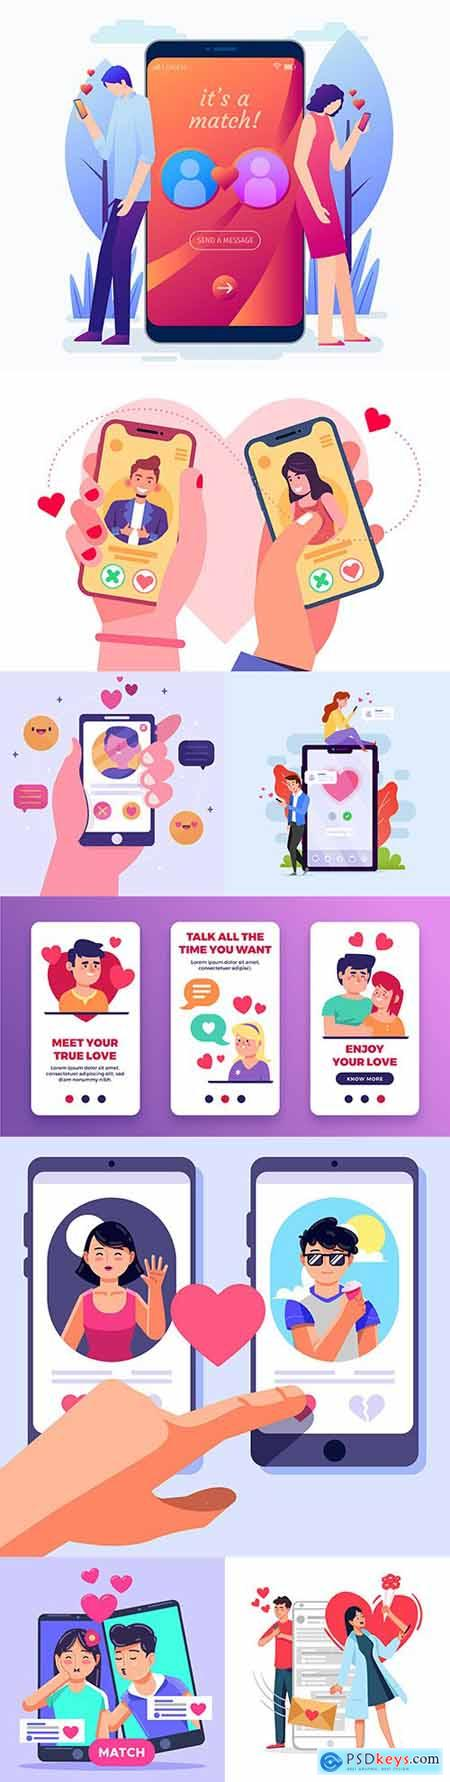 Romantic dating and dating apps flat concept illustration